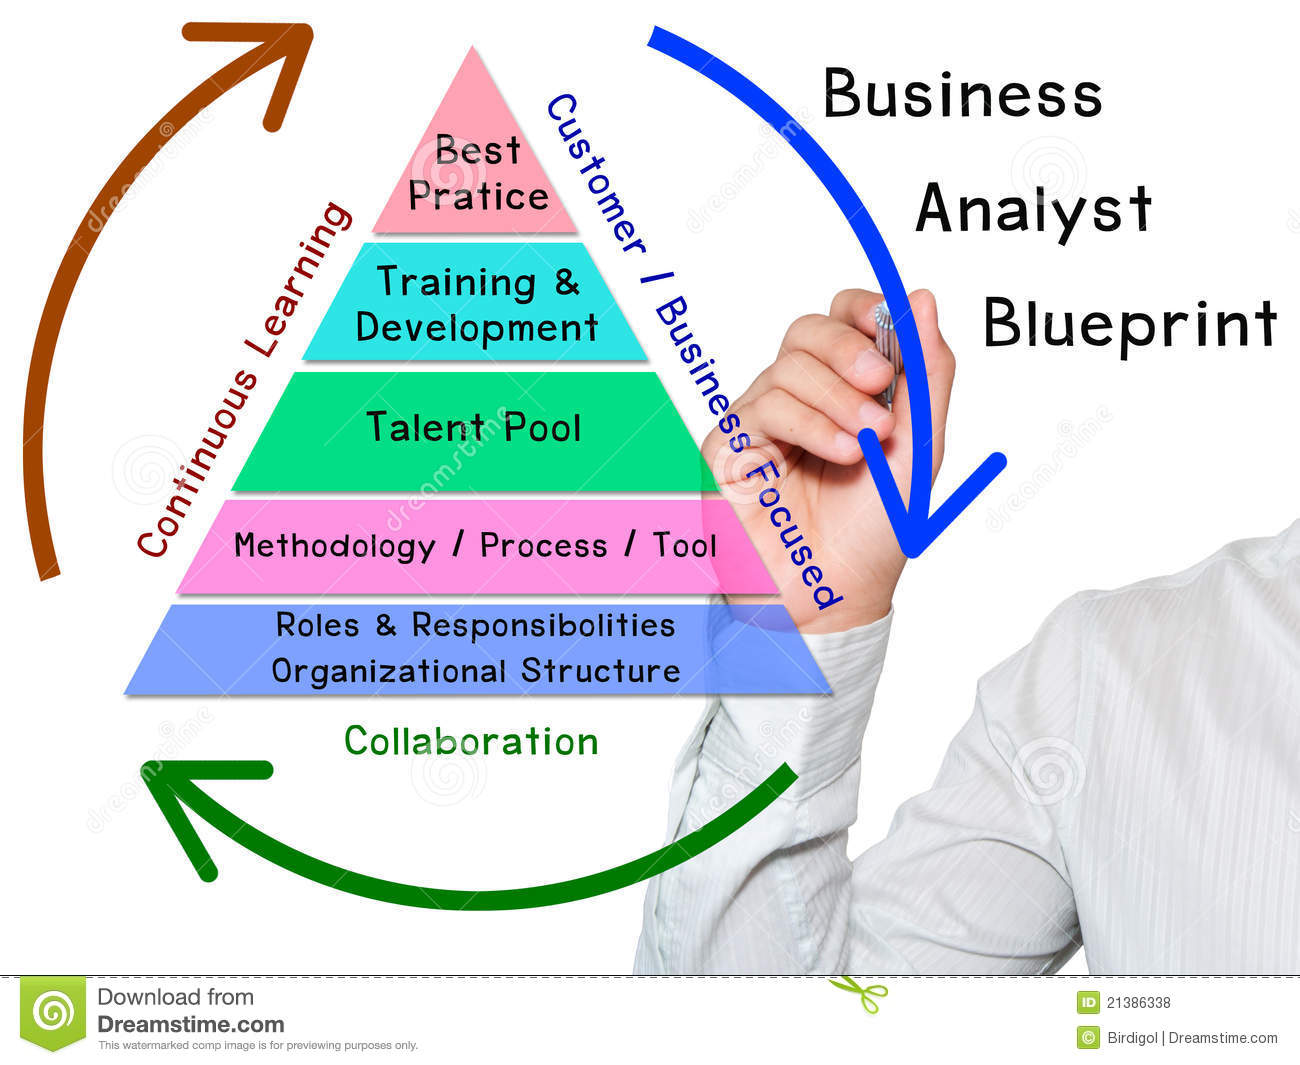 Hand write Business Analyst Blueprint